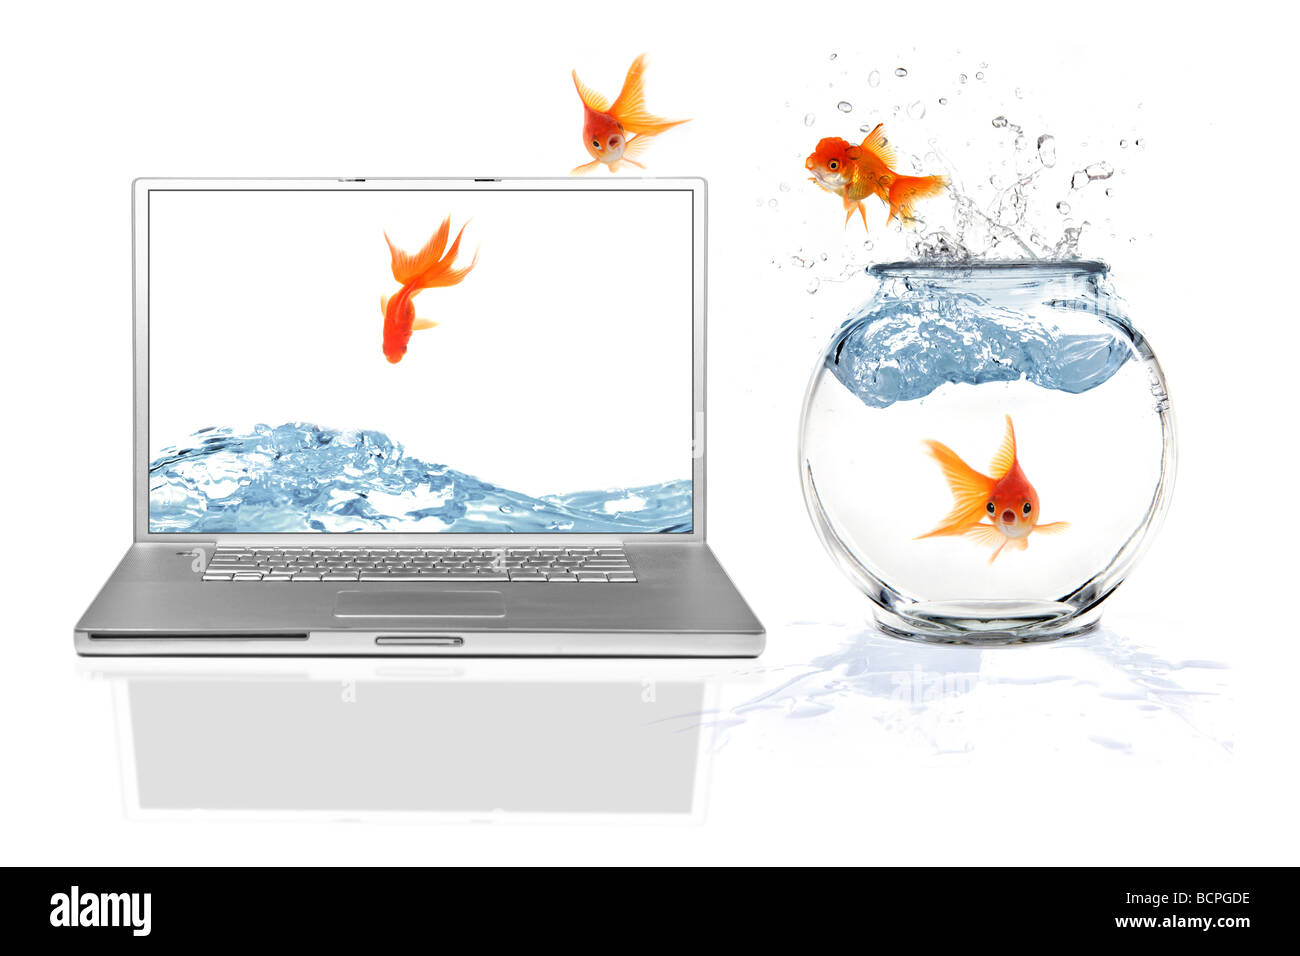 Aquarium Fish Online Stock Photos Aquarium Fish Online Stock